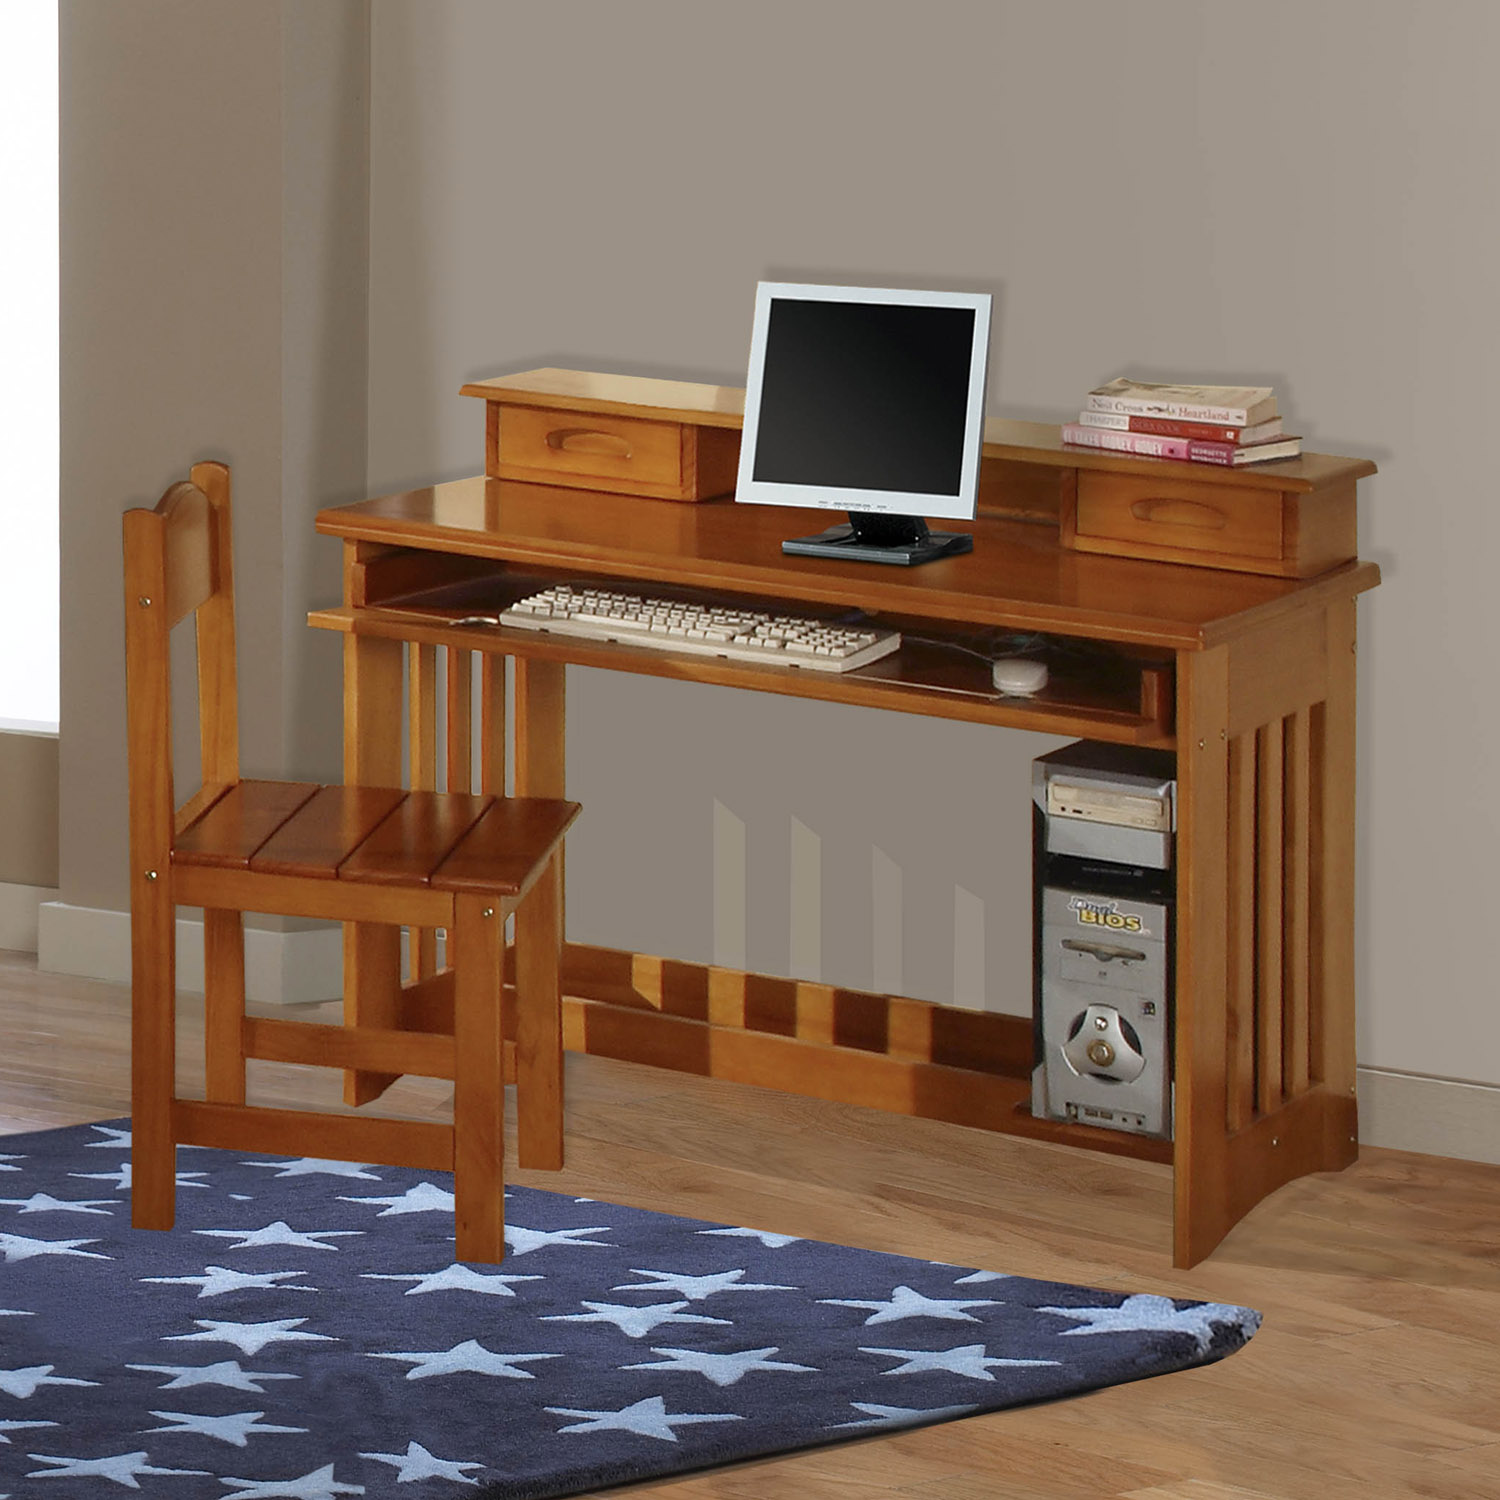 American Furniture Classics Model 2168, Solid Pine Student Desk with Hutch and Chair in Honey